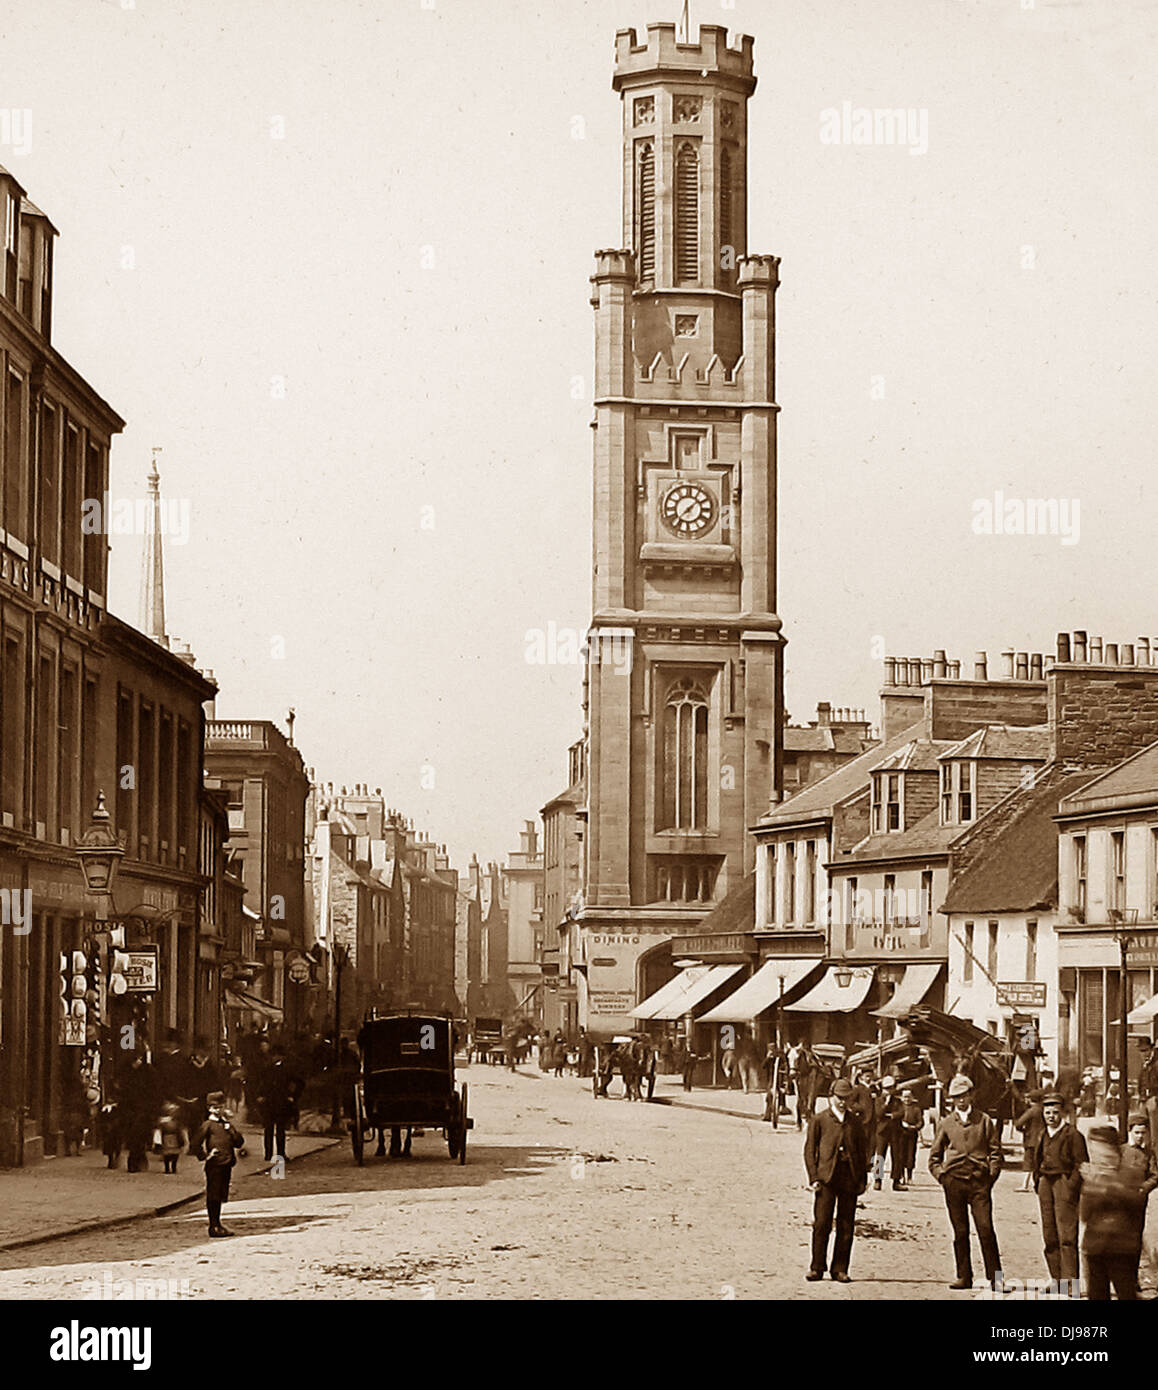 Ayr Wallace Tower Victorian period - Stock Image